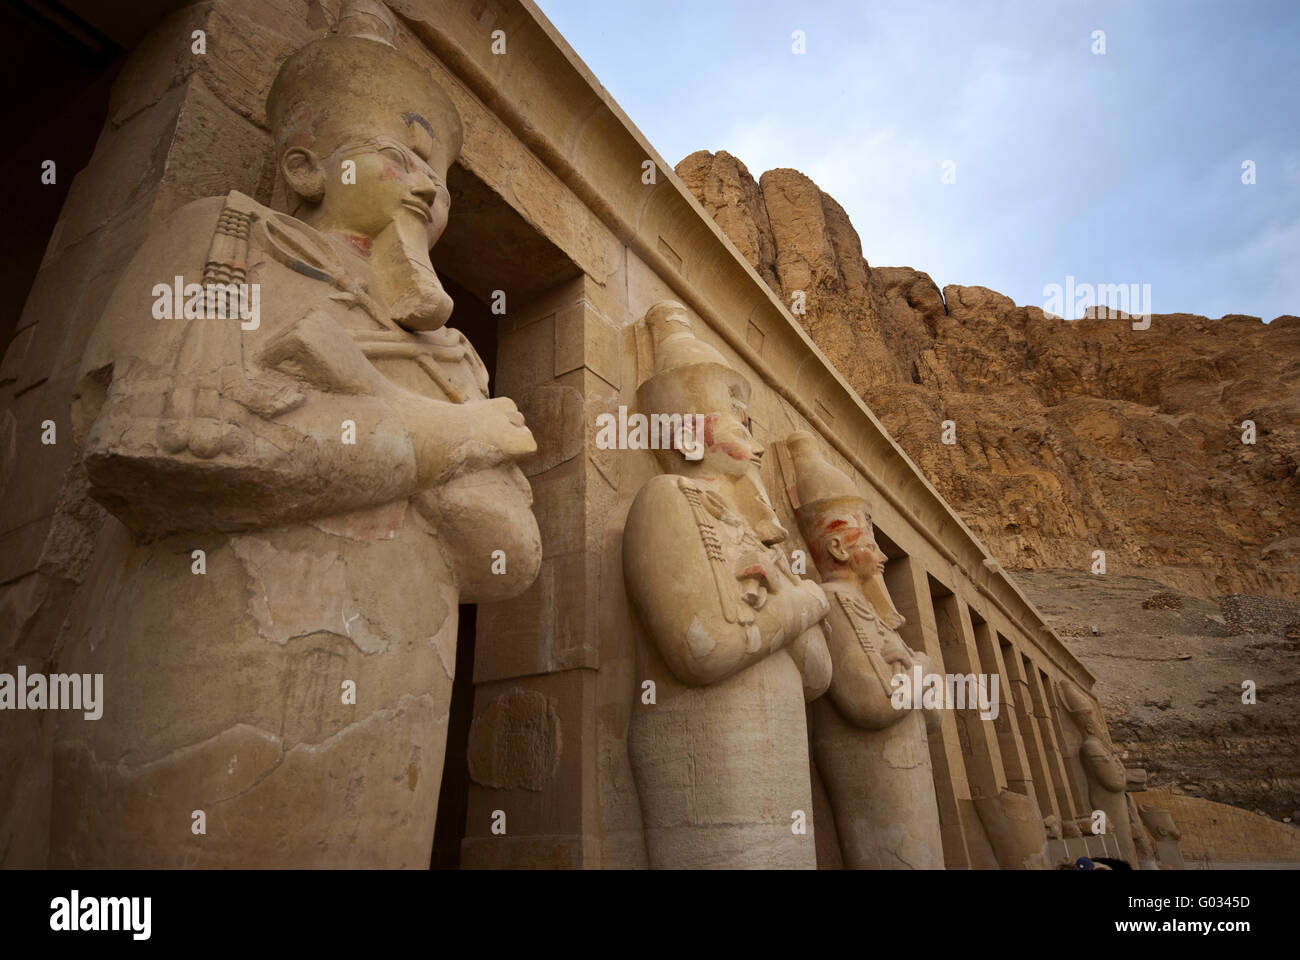 stone statues - Stock Image